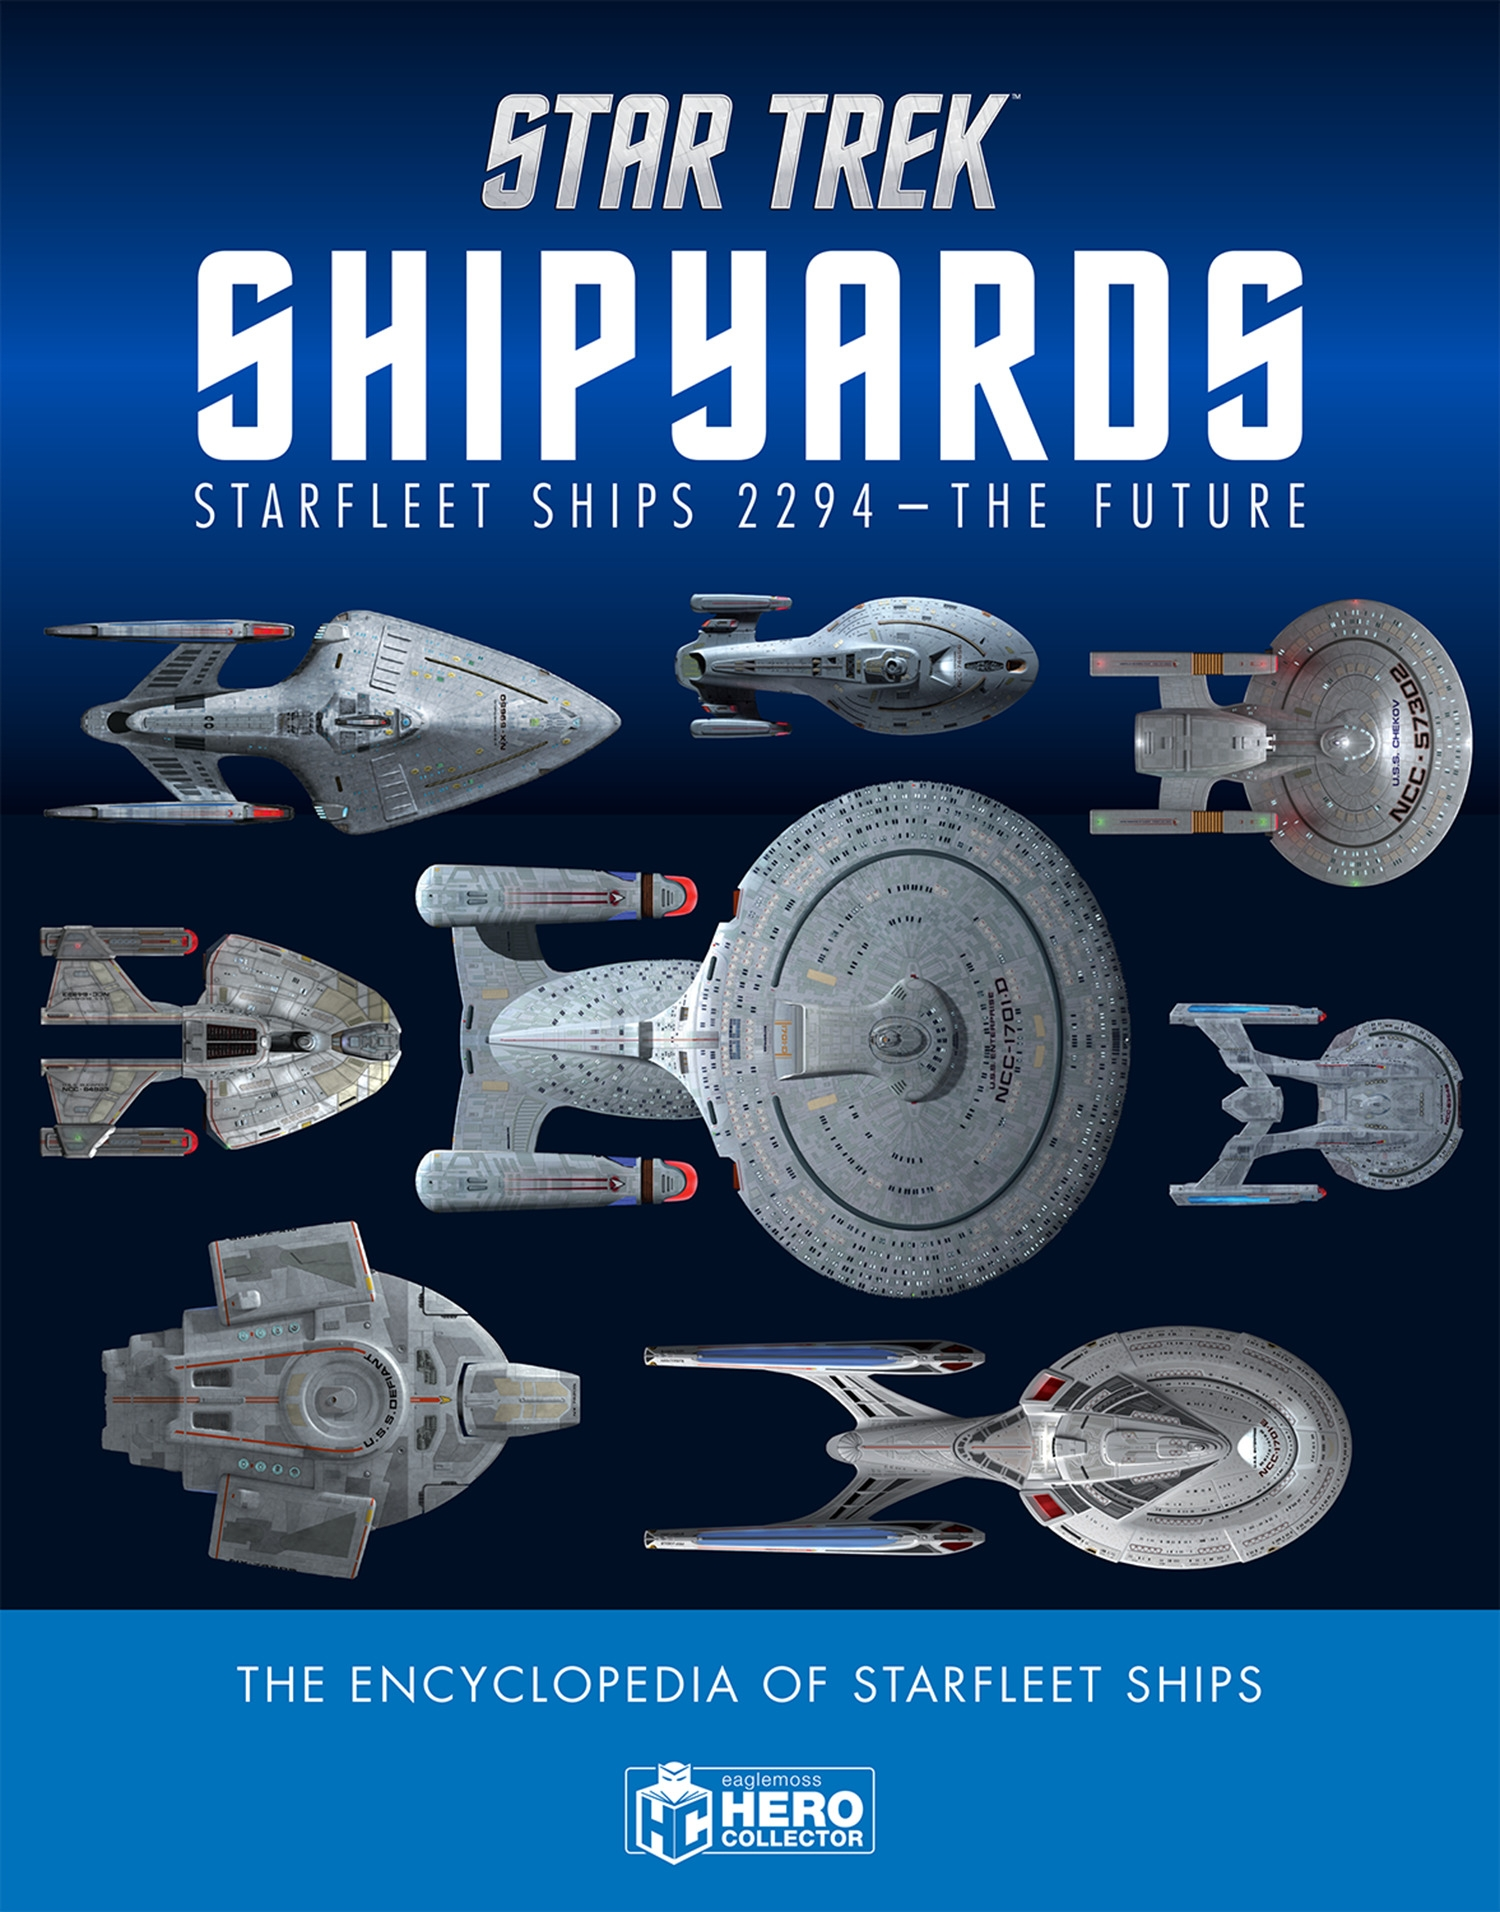 Star Trek Shipyards Starfleet Starships: 2294 to the Future the Encyclopedia of Starfleet Ships